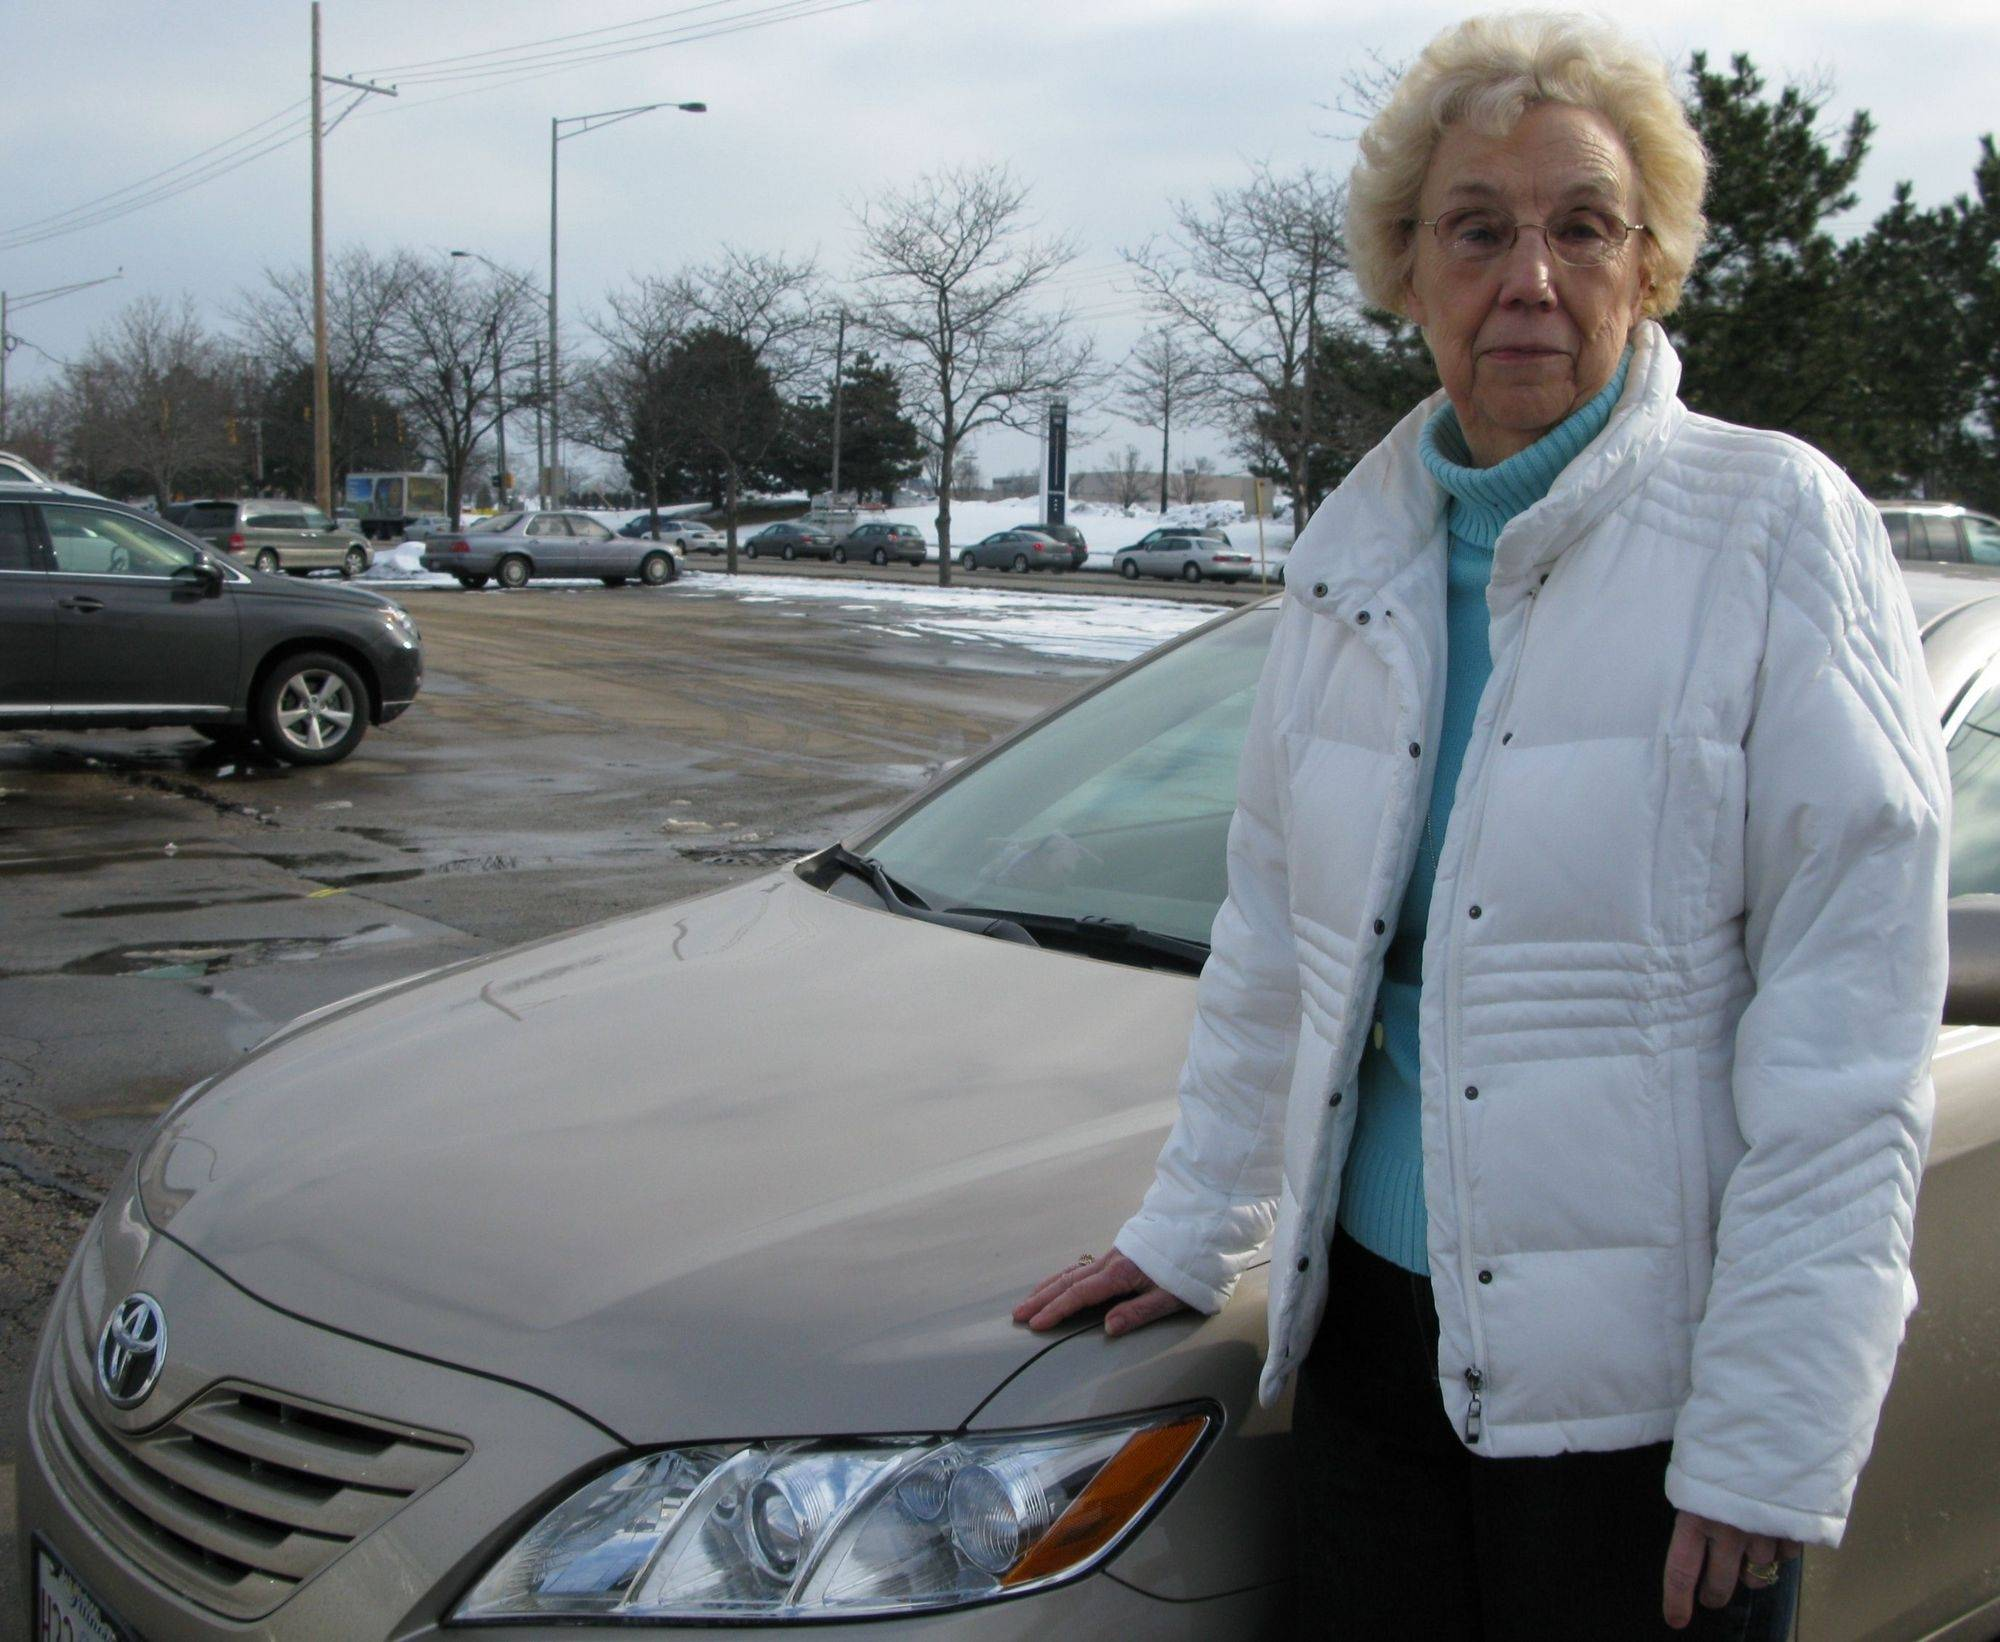 Evelyn Loper of Hoffman Estates, who recently bought this 2009 Toyota Camry, says it may be the last Toyota she purchases because of the automaker's handling of the national recall of 2.3 million vehicles affected by a sticky accelerator pedal.